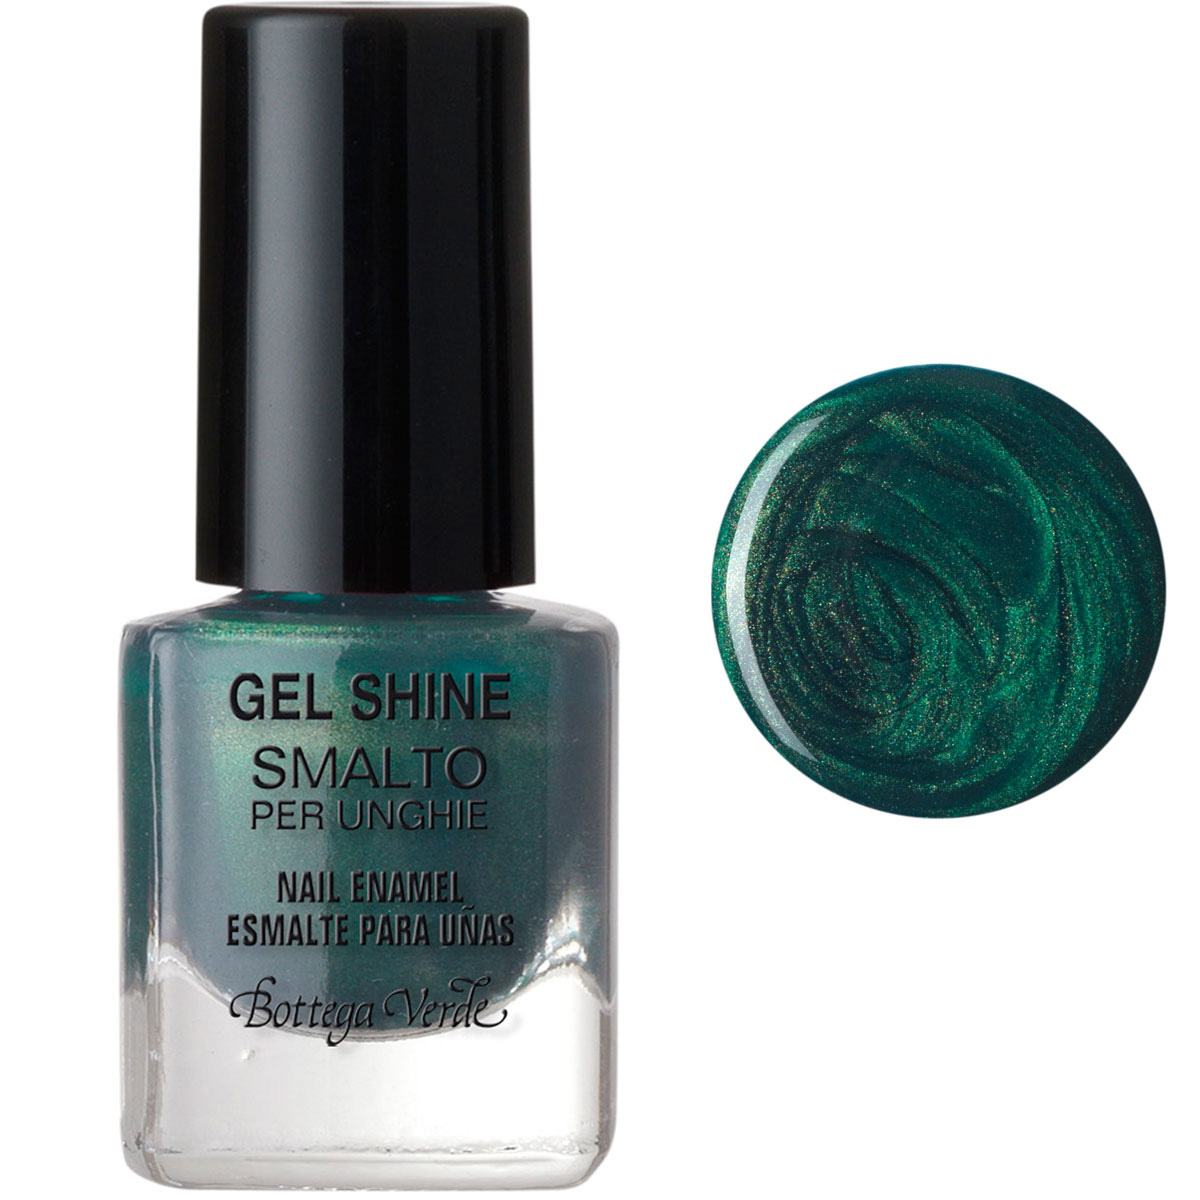 Lac de unghii, smarald - Gel Shine, 5 ML